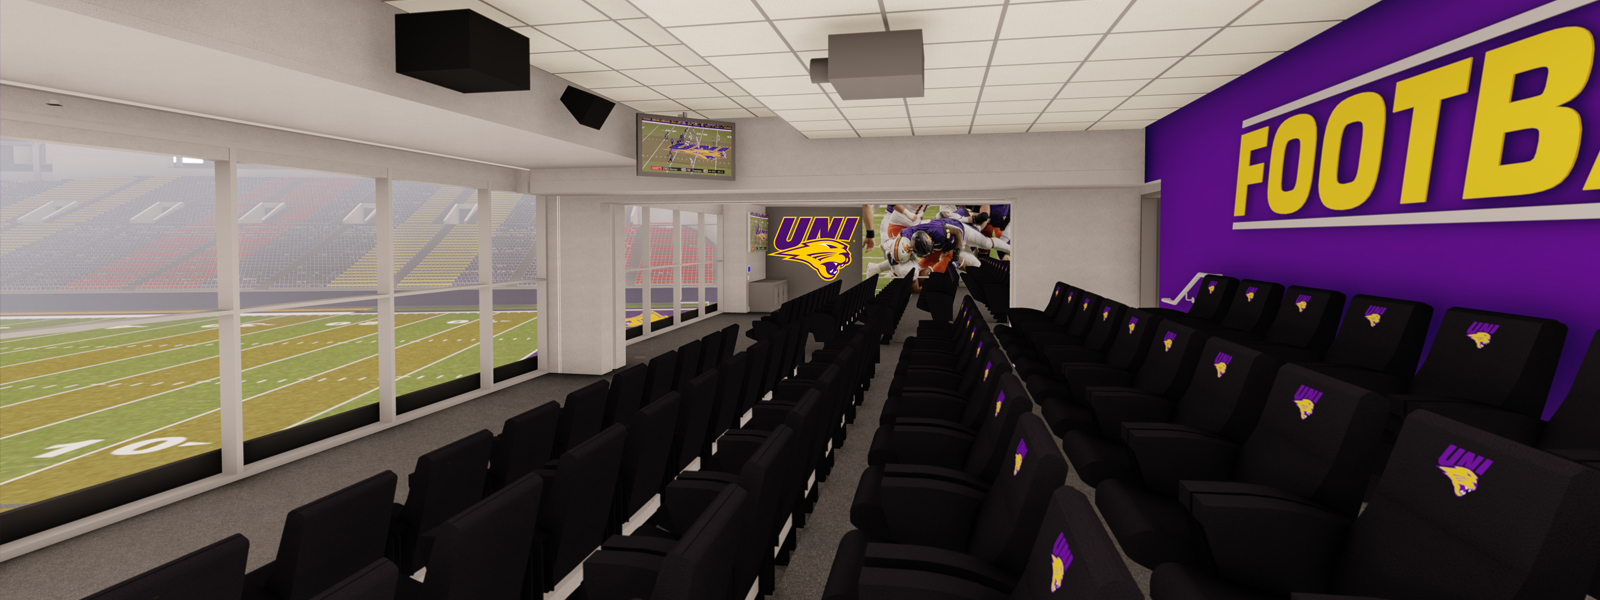 West view of the football team meeting room with stadium seating overlooking the UNI-Dome field